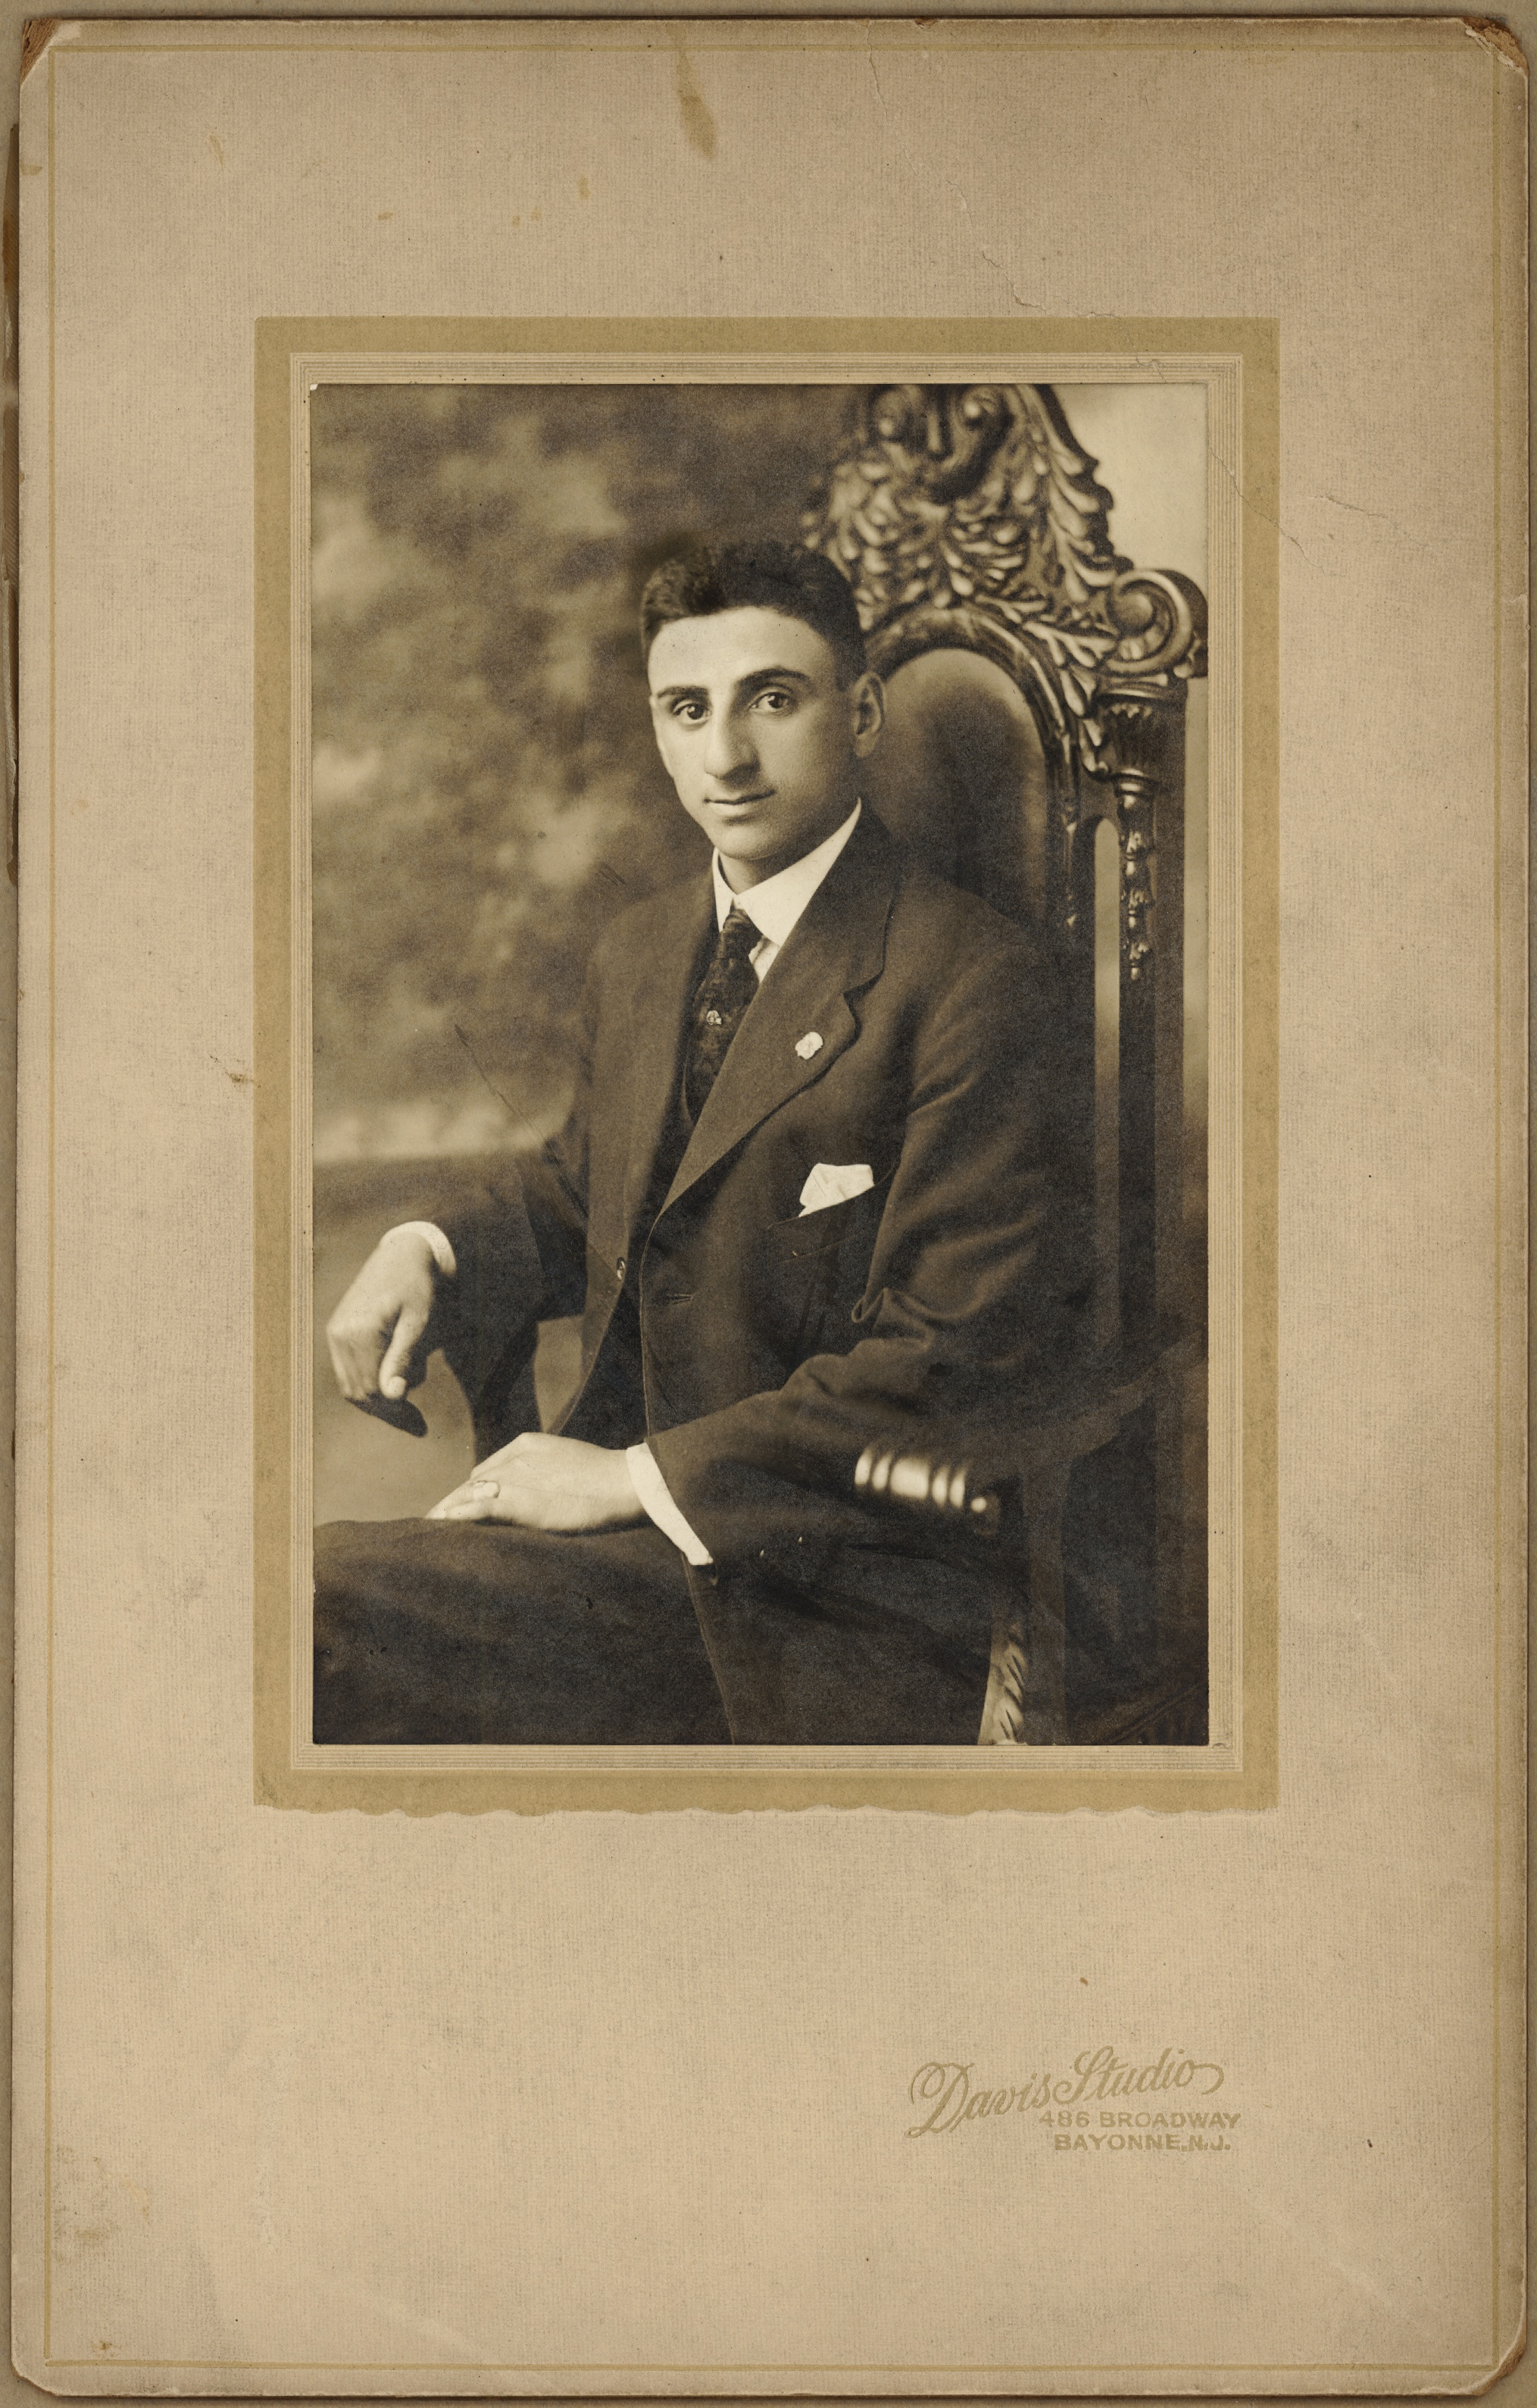 ~1907New York City  Joseph Acquiste [my great grandfather] as a young man.